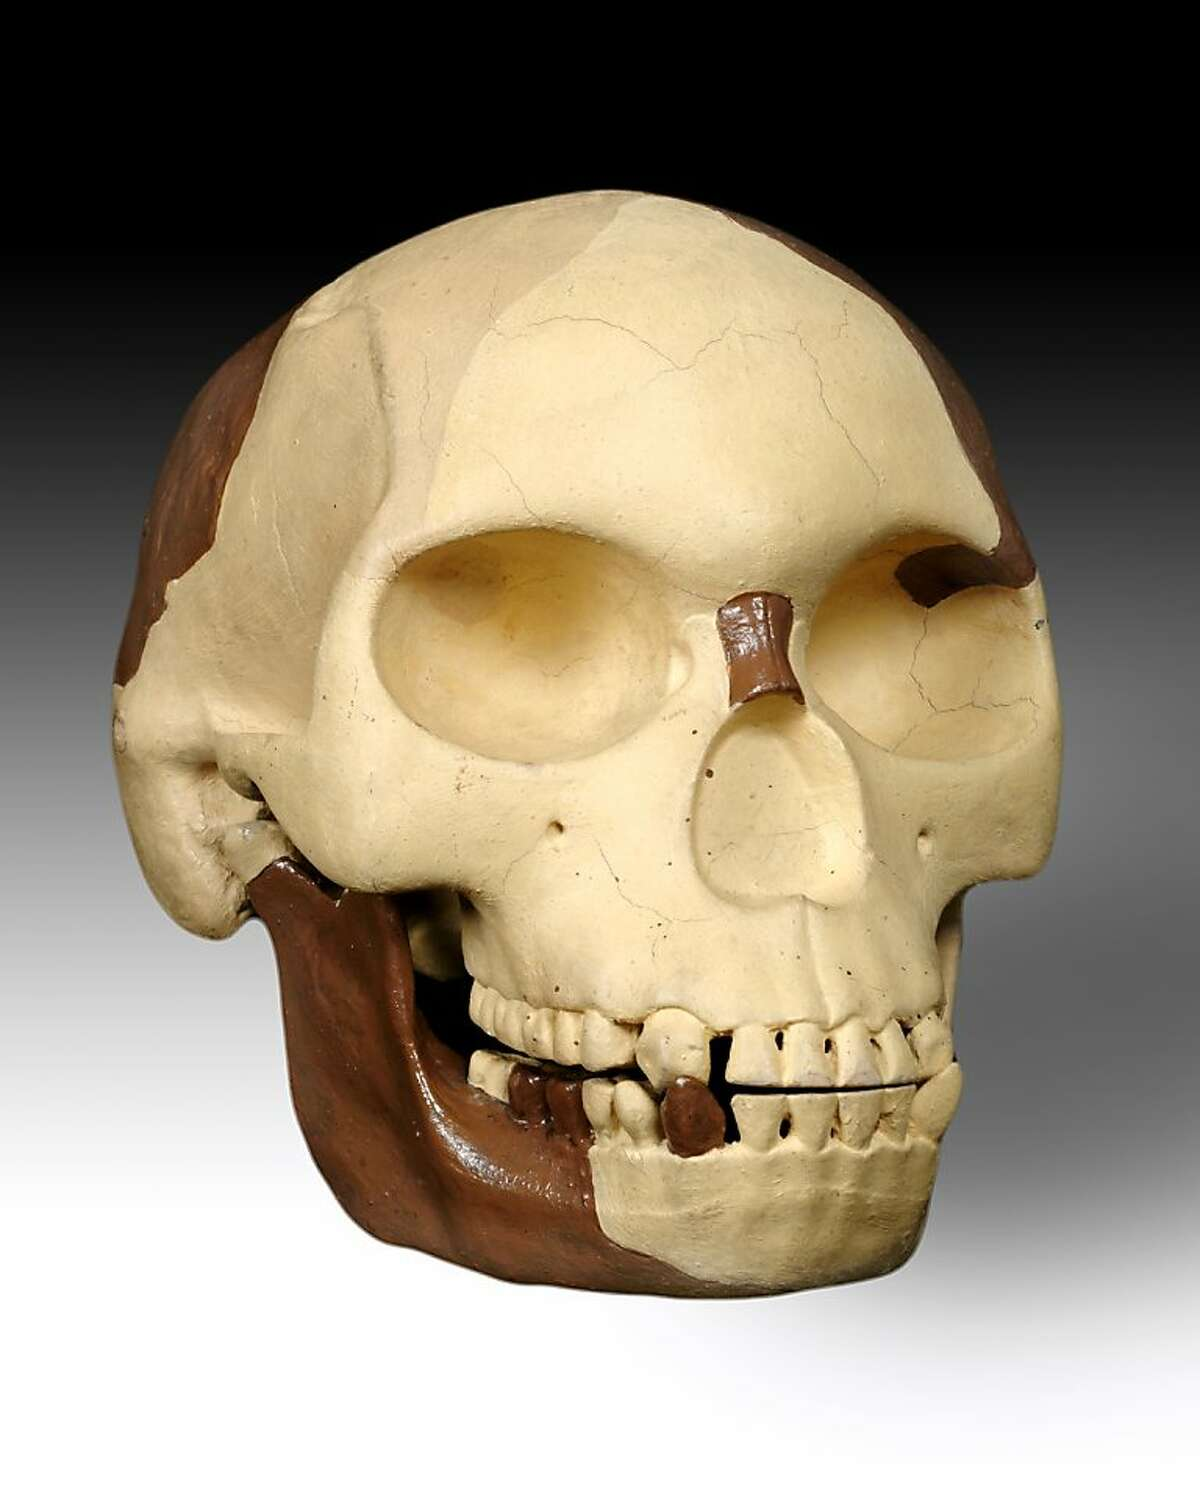 The Piltdown skull fused a centuries-old human skull with an orangutan jaw stained to look ancient.